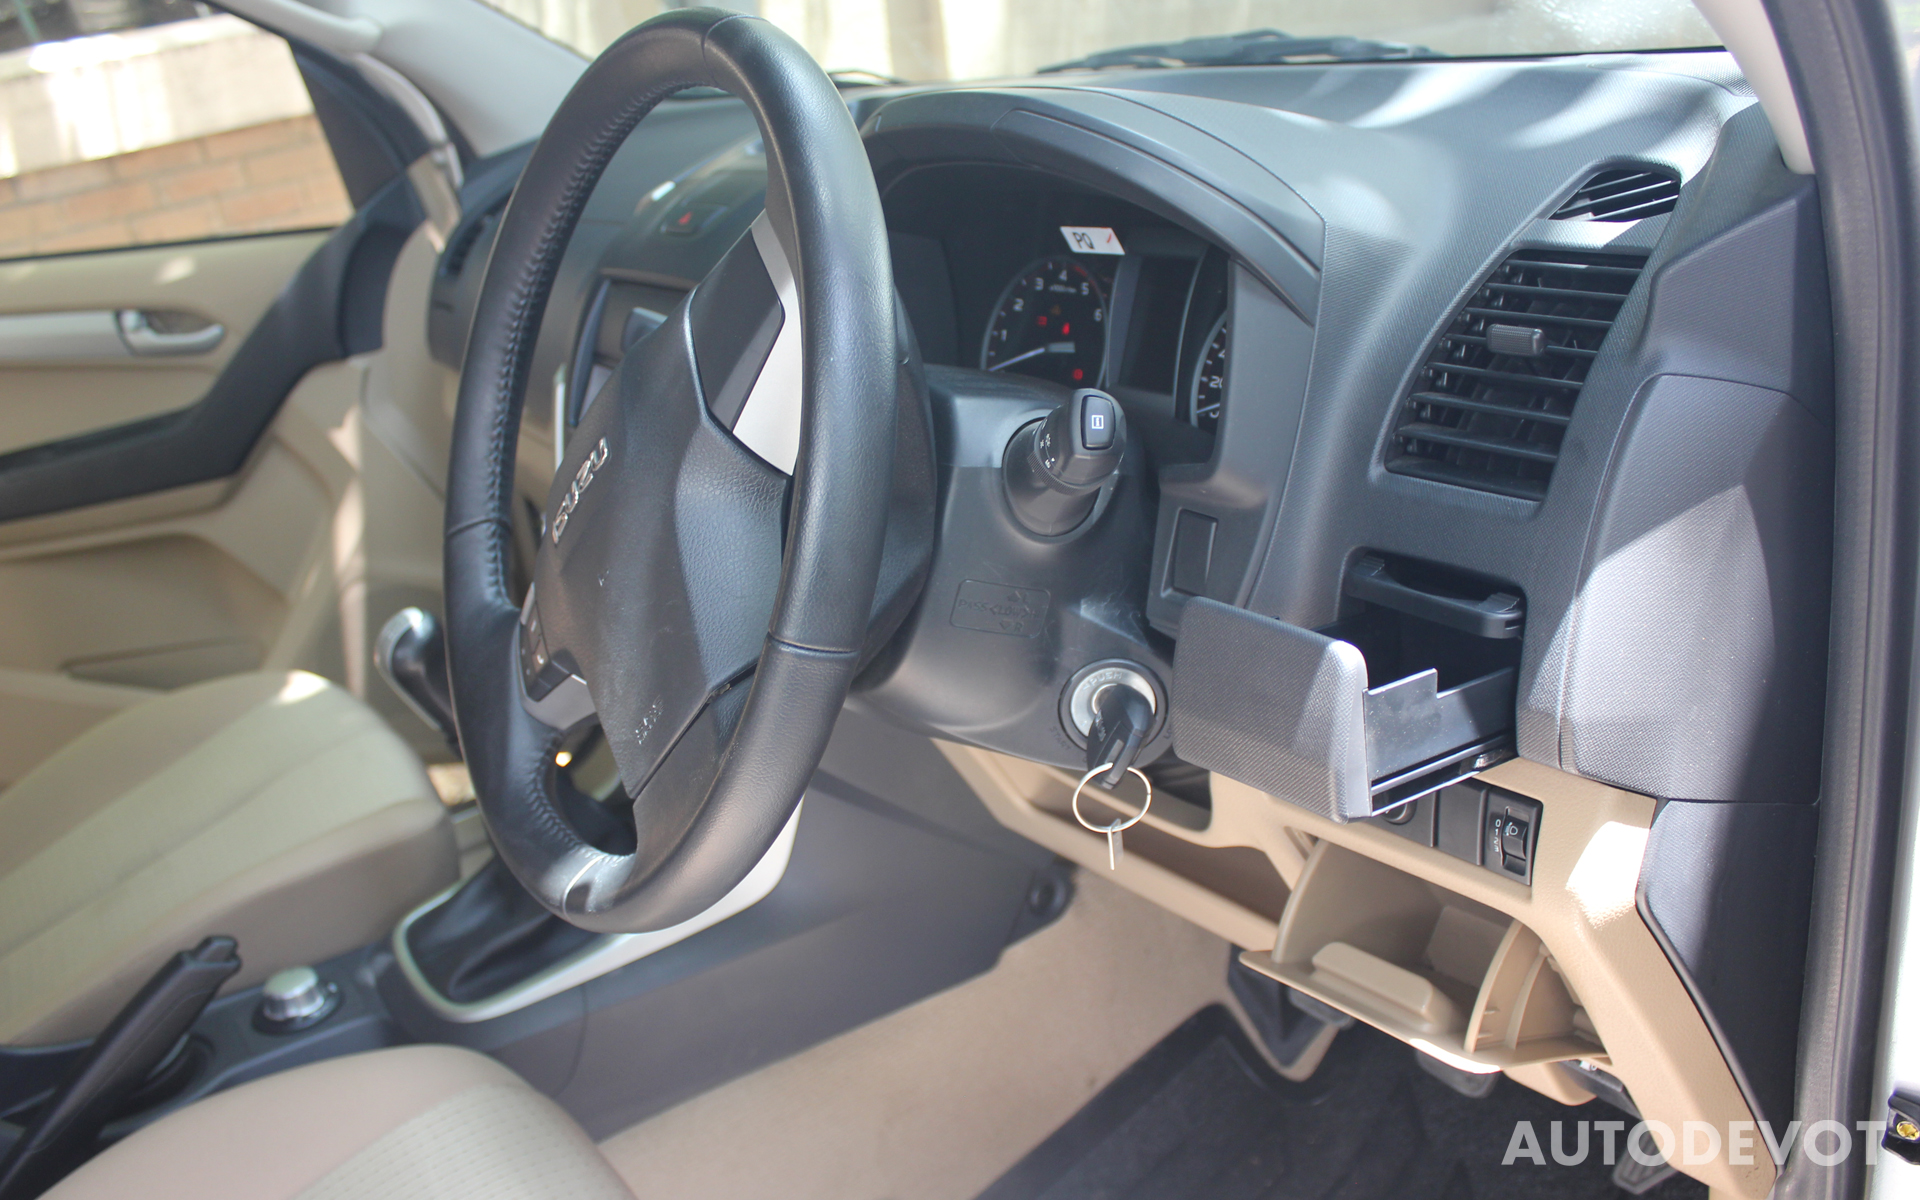 Isuzu D-Max V-Cross Interior